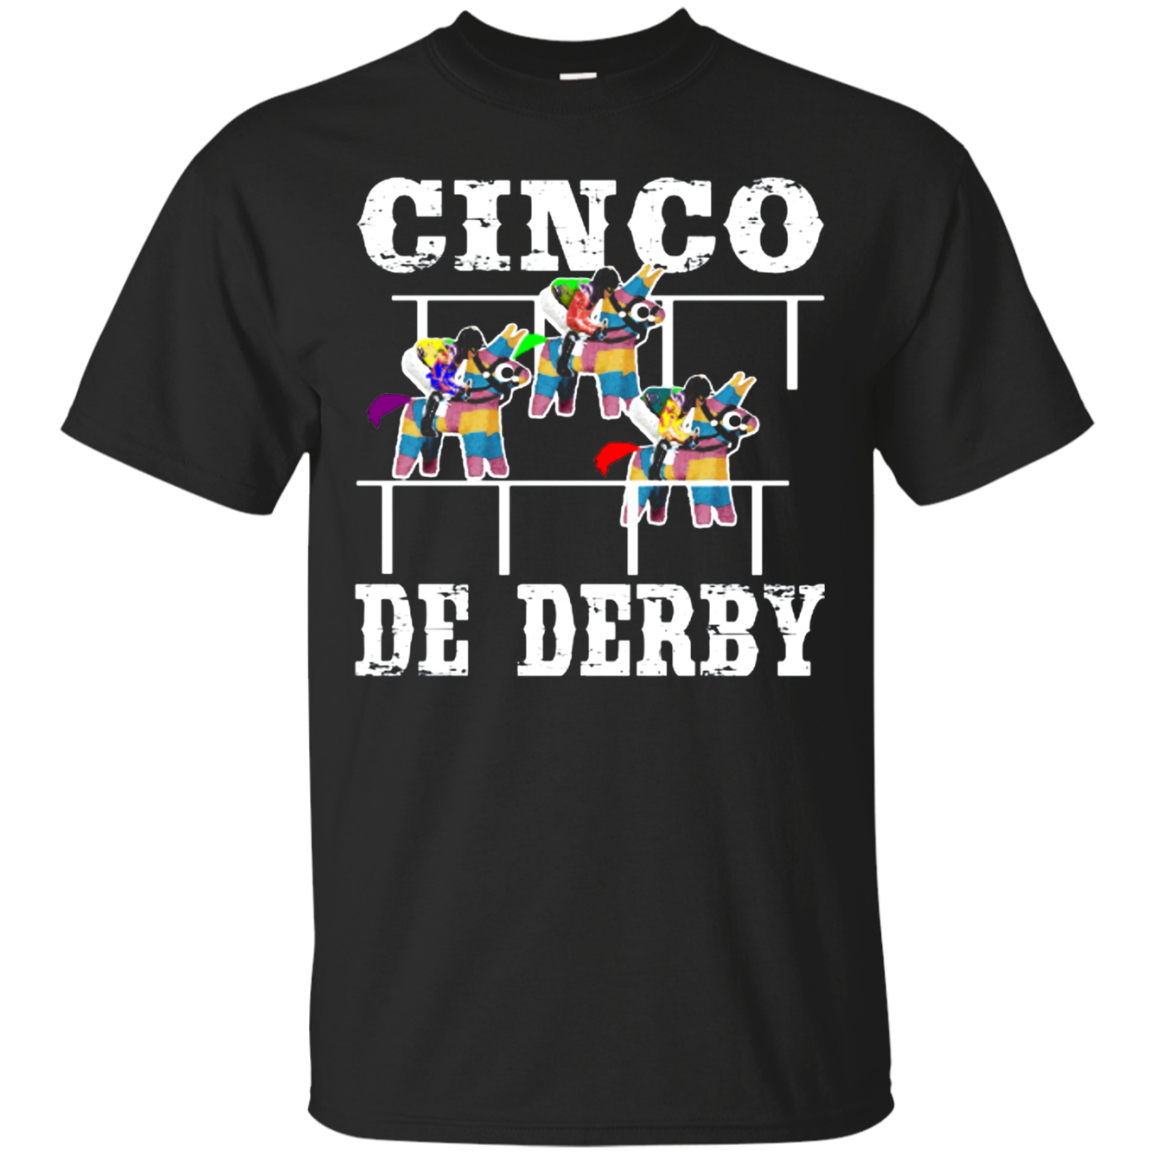 Cinco De Derby De Mayo Kentucky Horse Race Mexican shirt Cotton t shirt Men